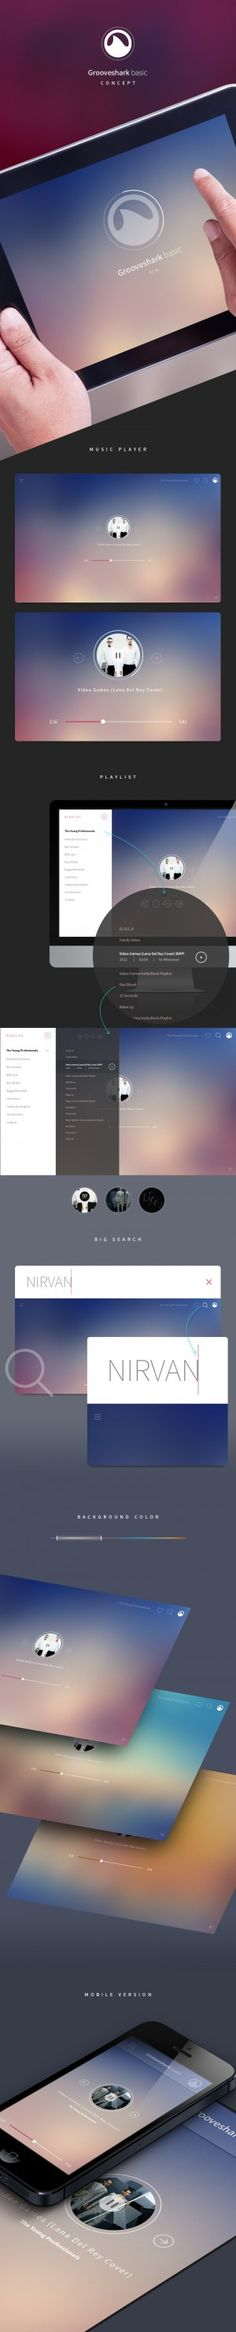 Concept – GROOVESHARK BASIC PLAYER. | Inspiration DE